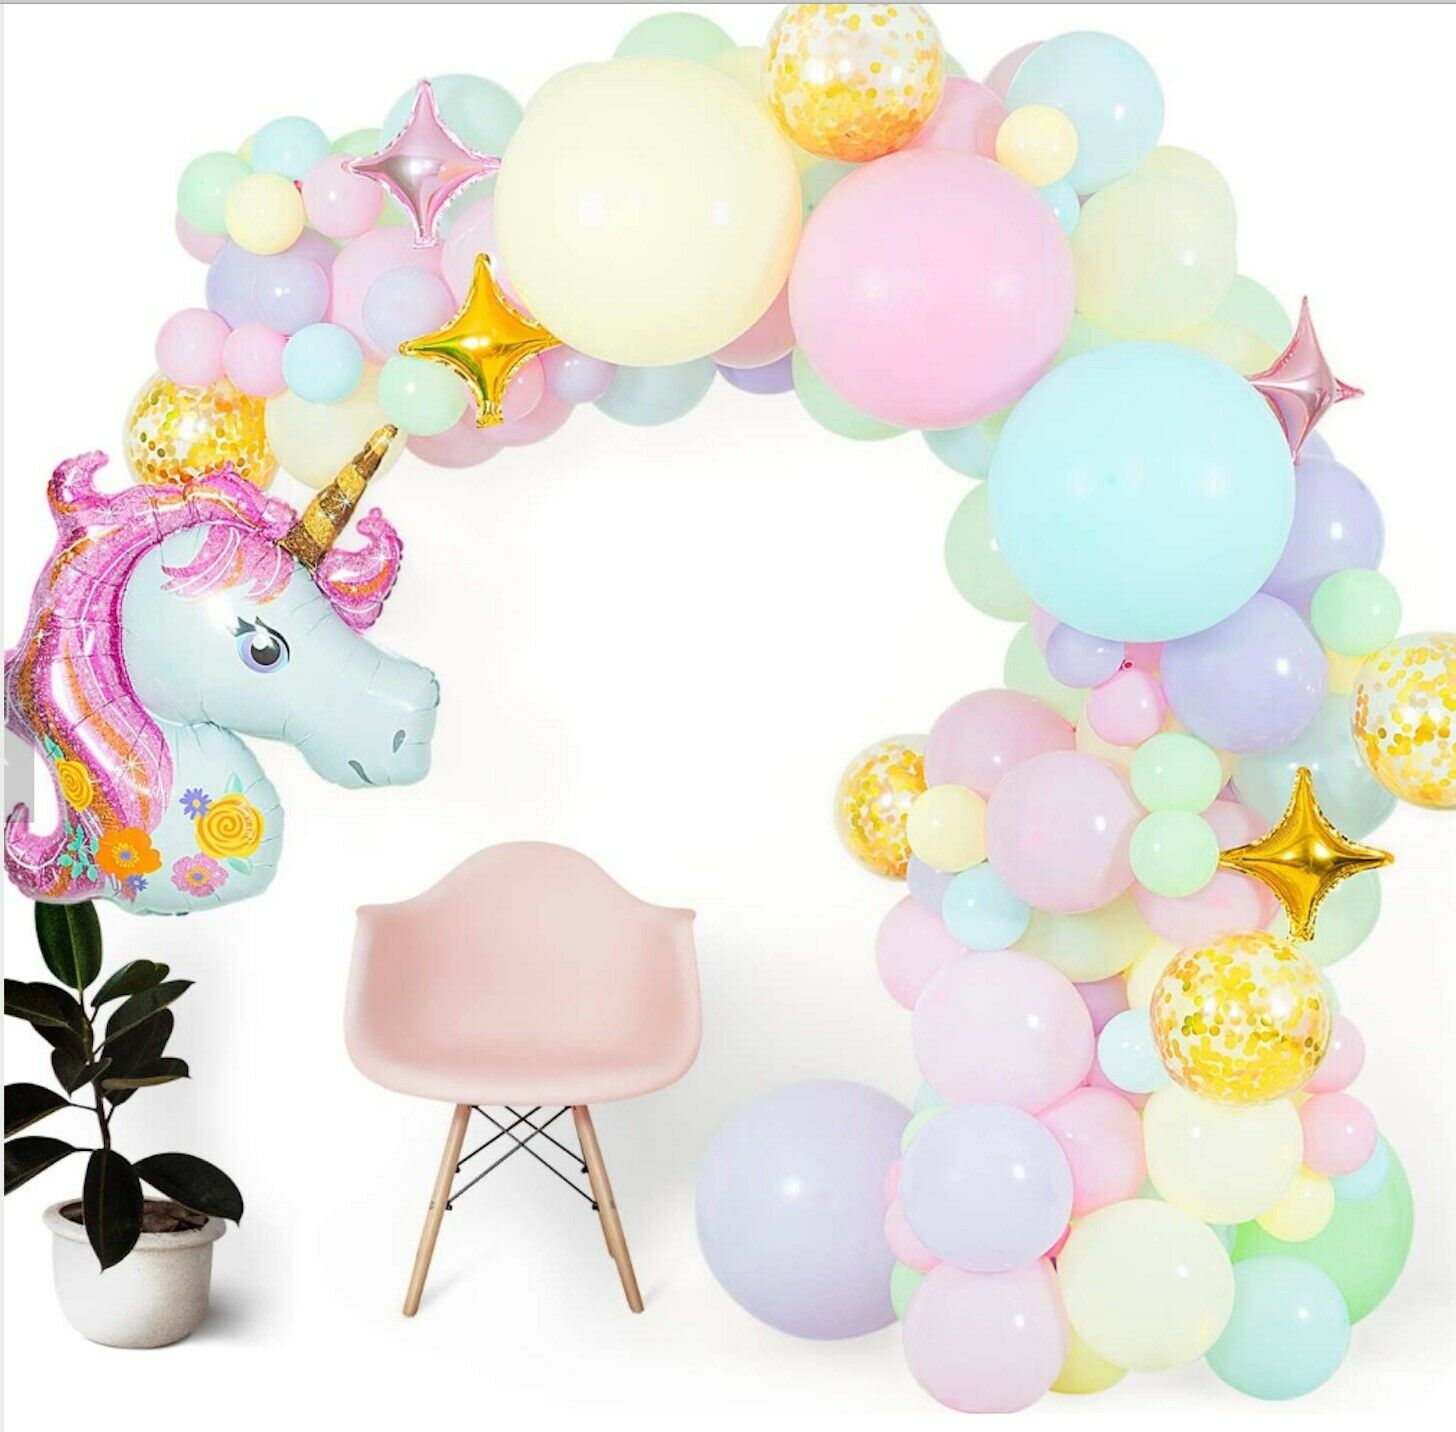 Colorful Unicorn Themed Birthday Balloon Arch, Unicorn Complete Balloon Kit Greeting Cards & Party Supply